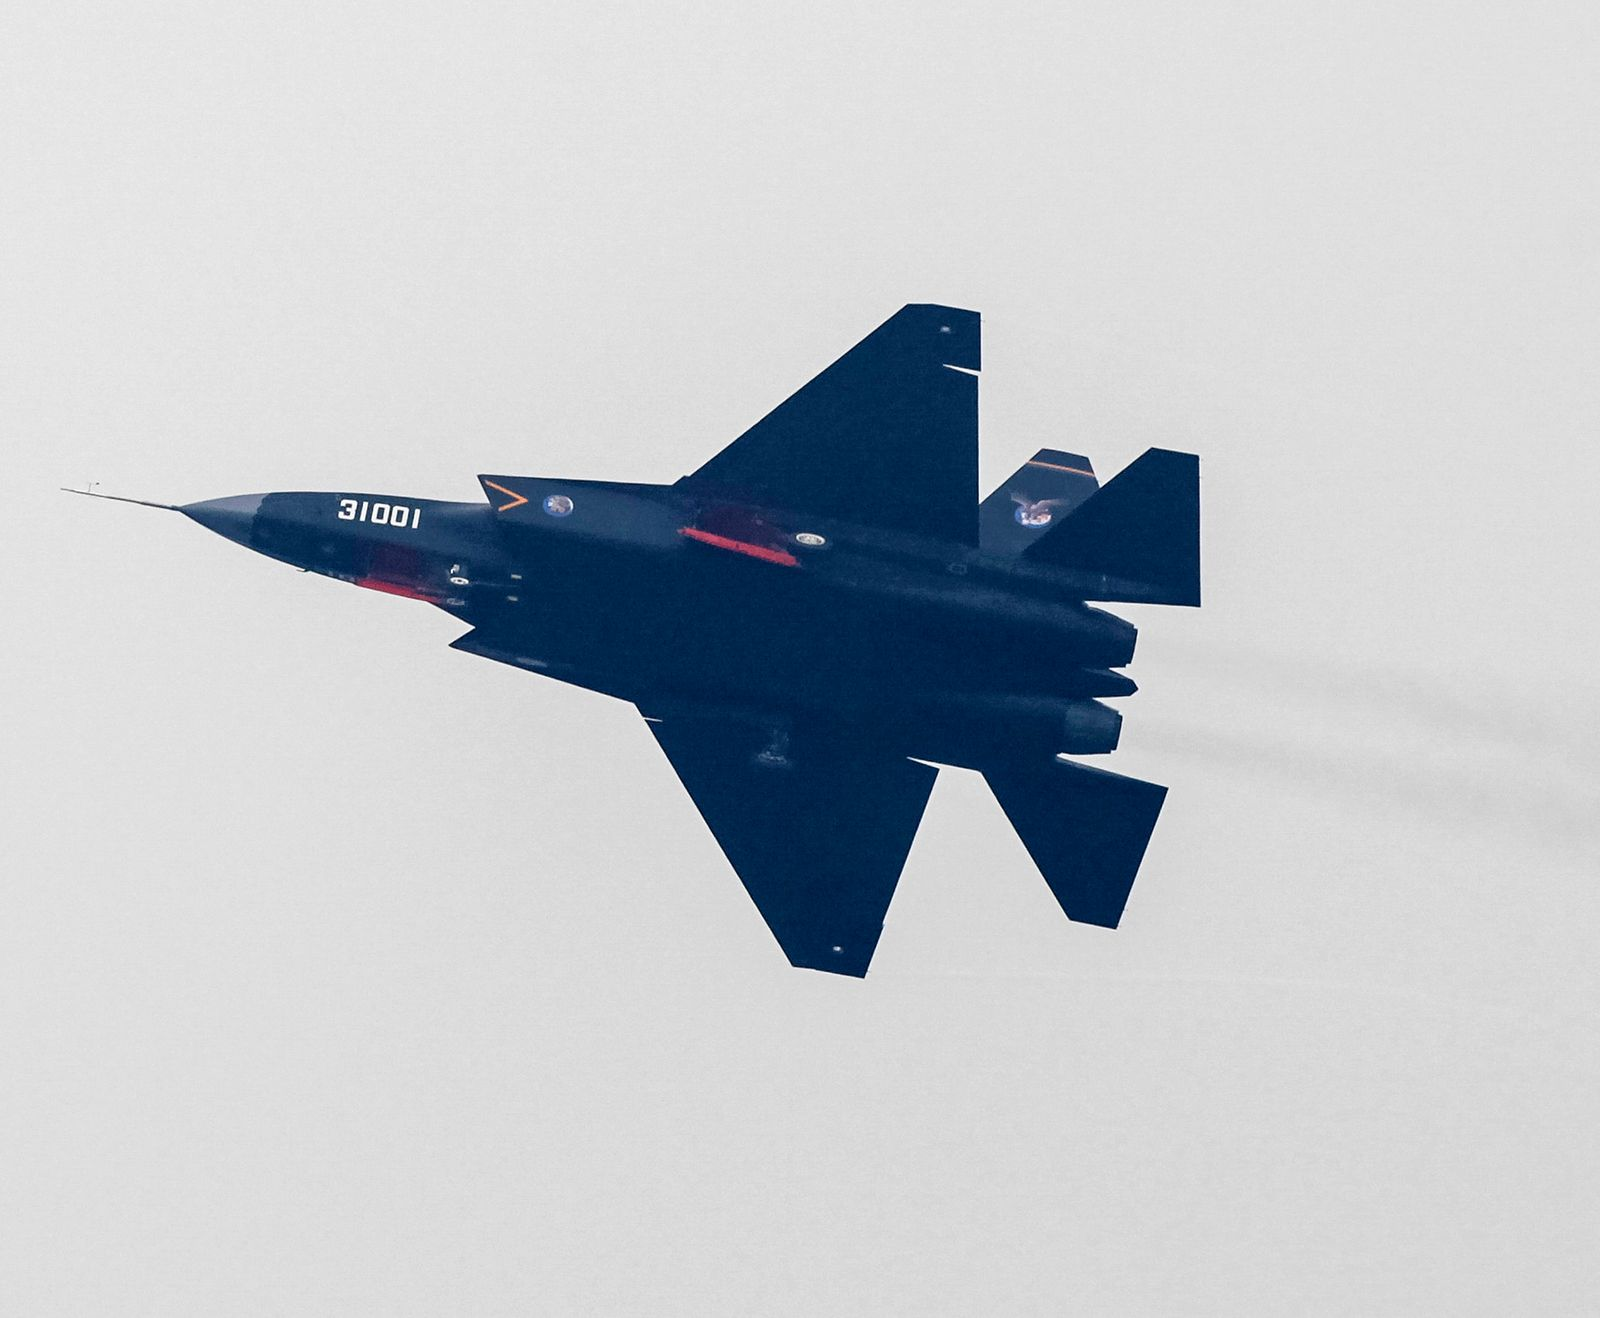 How Good Is China's J-31 Stealth Fighter?